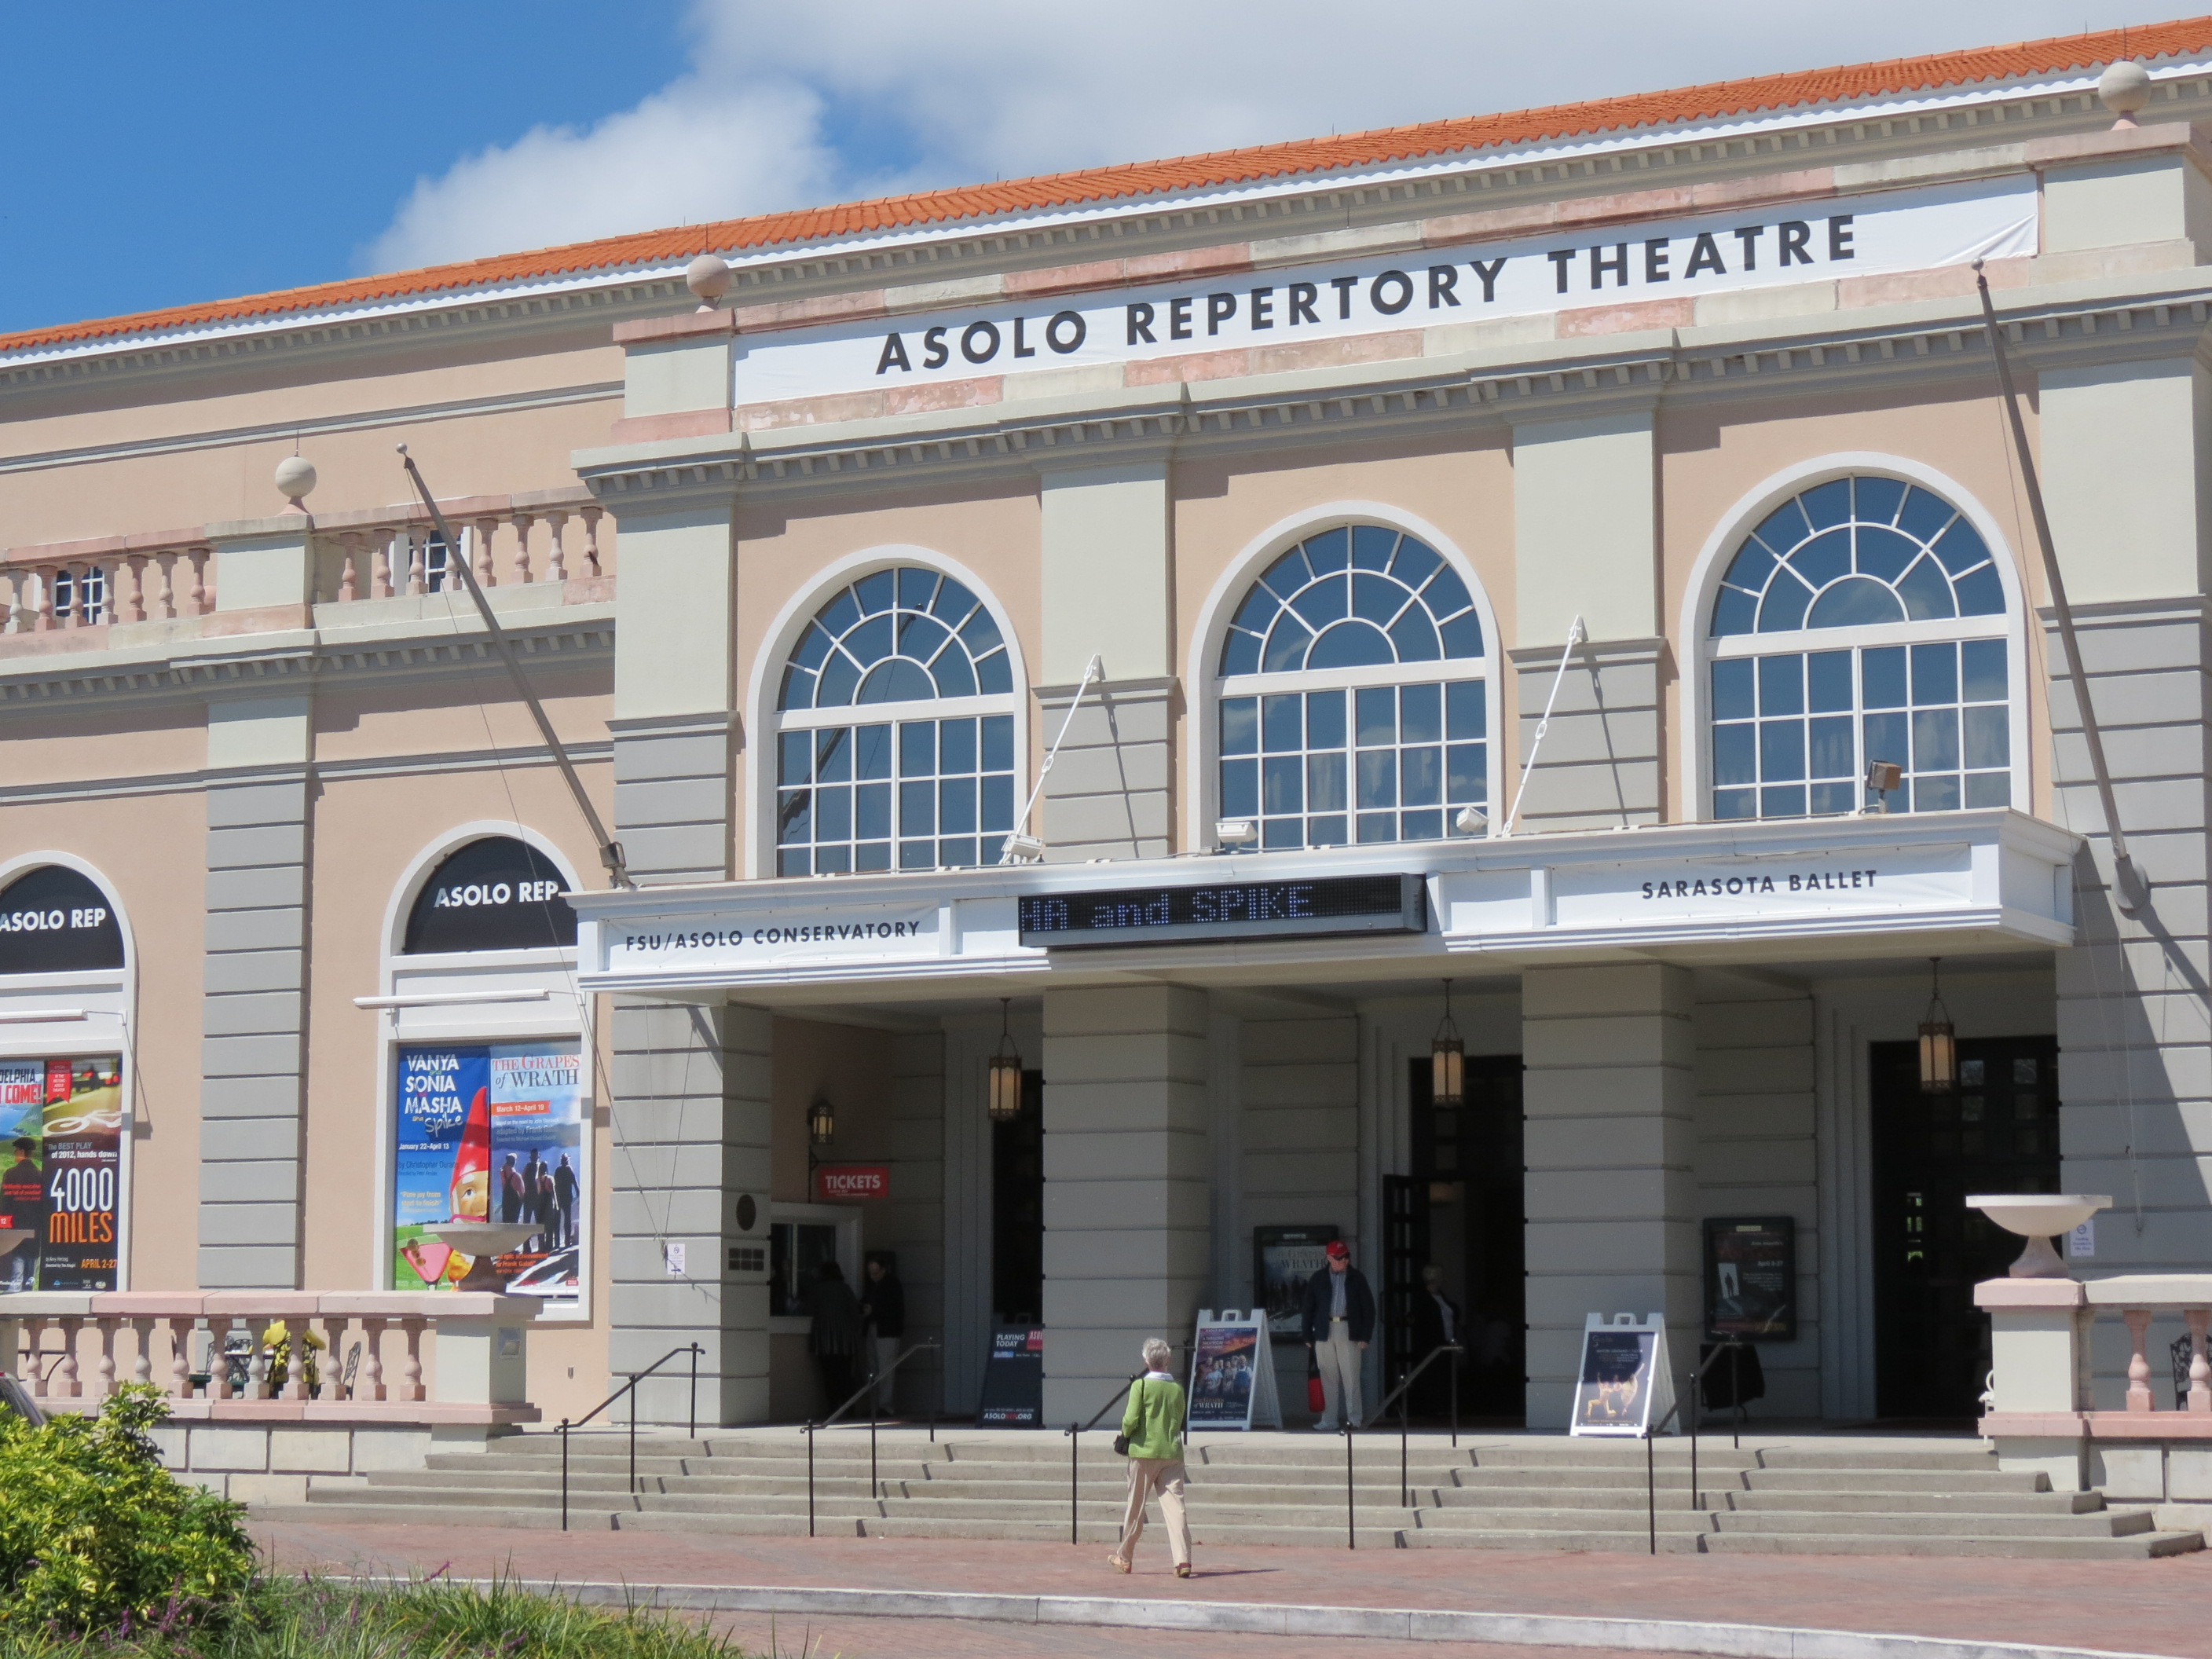 The reconstruction and opening of the theater in the 1950s led to the creation of the Asolo Theatre Festival and Asolo Theatre Company.